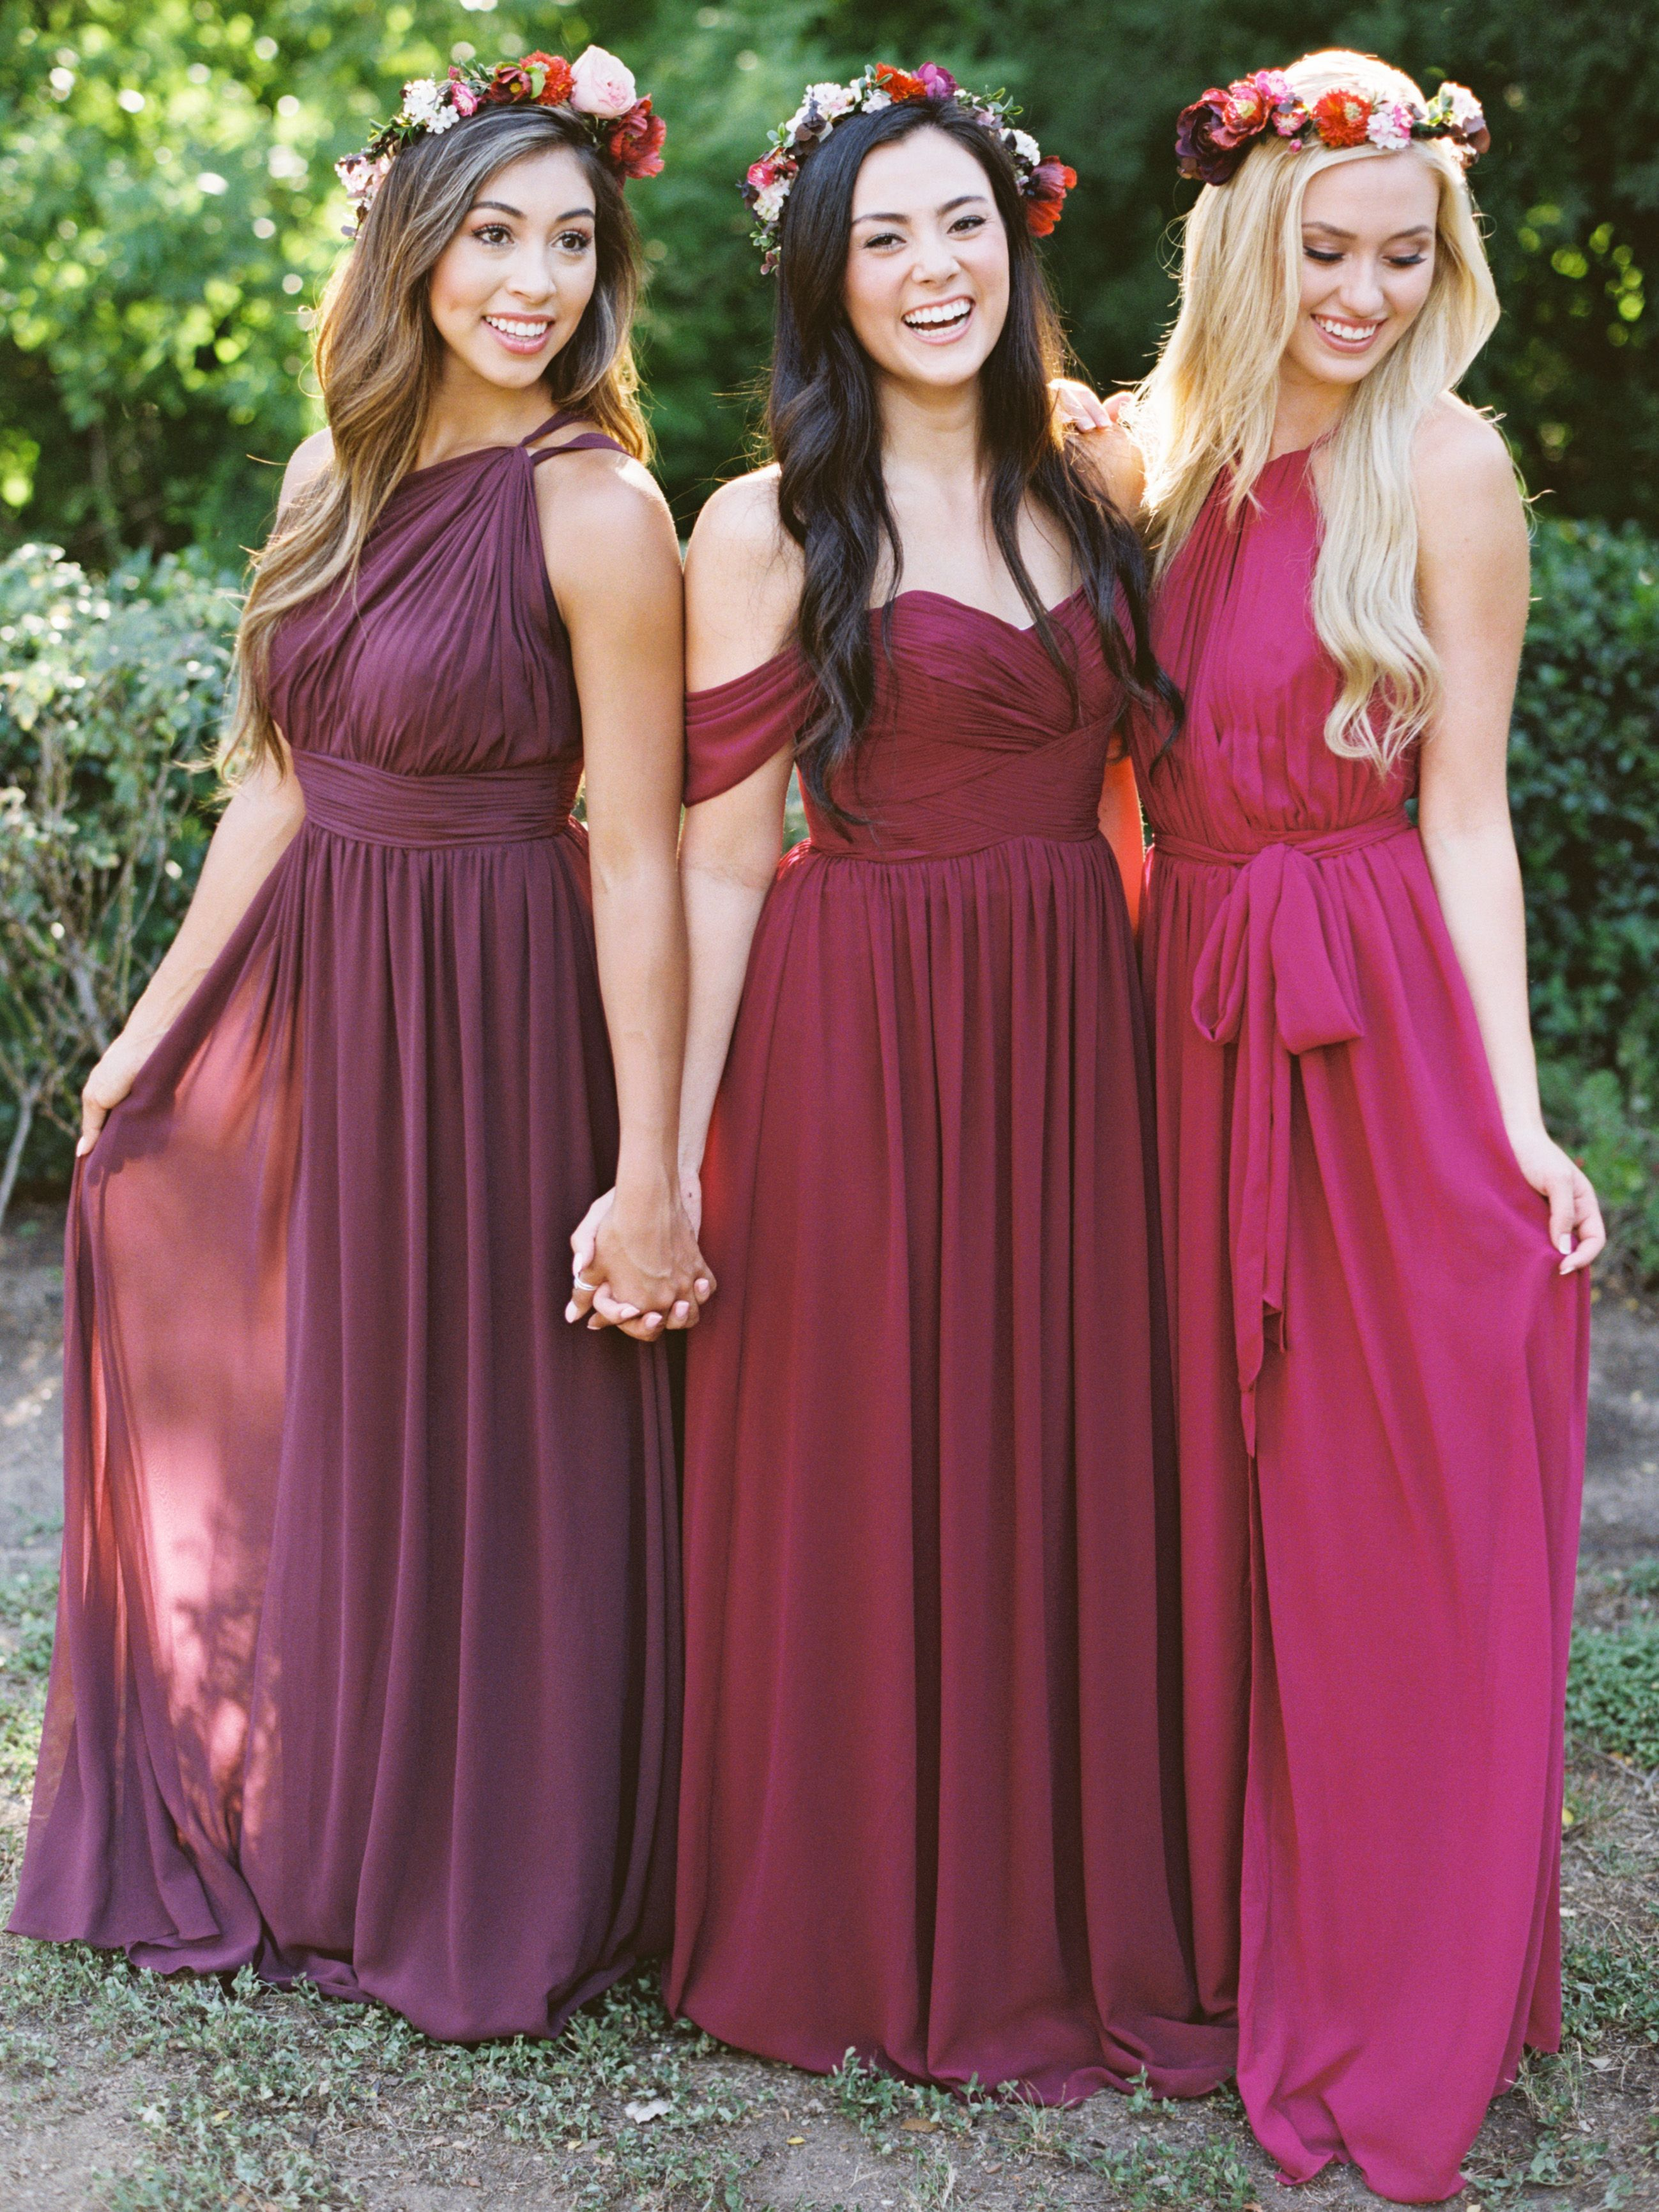 Brooklyn Dress Merlot Chiffon Kennedy Convertible Dress Marsala Chiffon Eliza Red Bridesmaid Dresses Dark Red Bridesmaid Dresses Elegant Bridesmaid Dresses